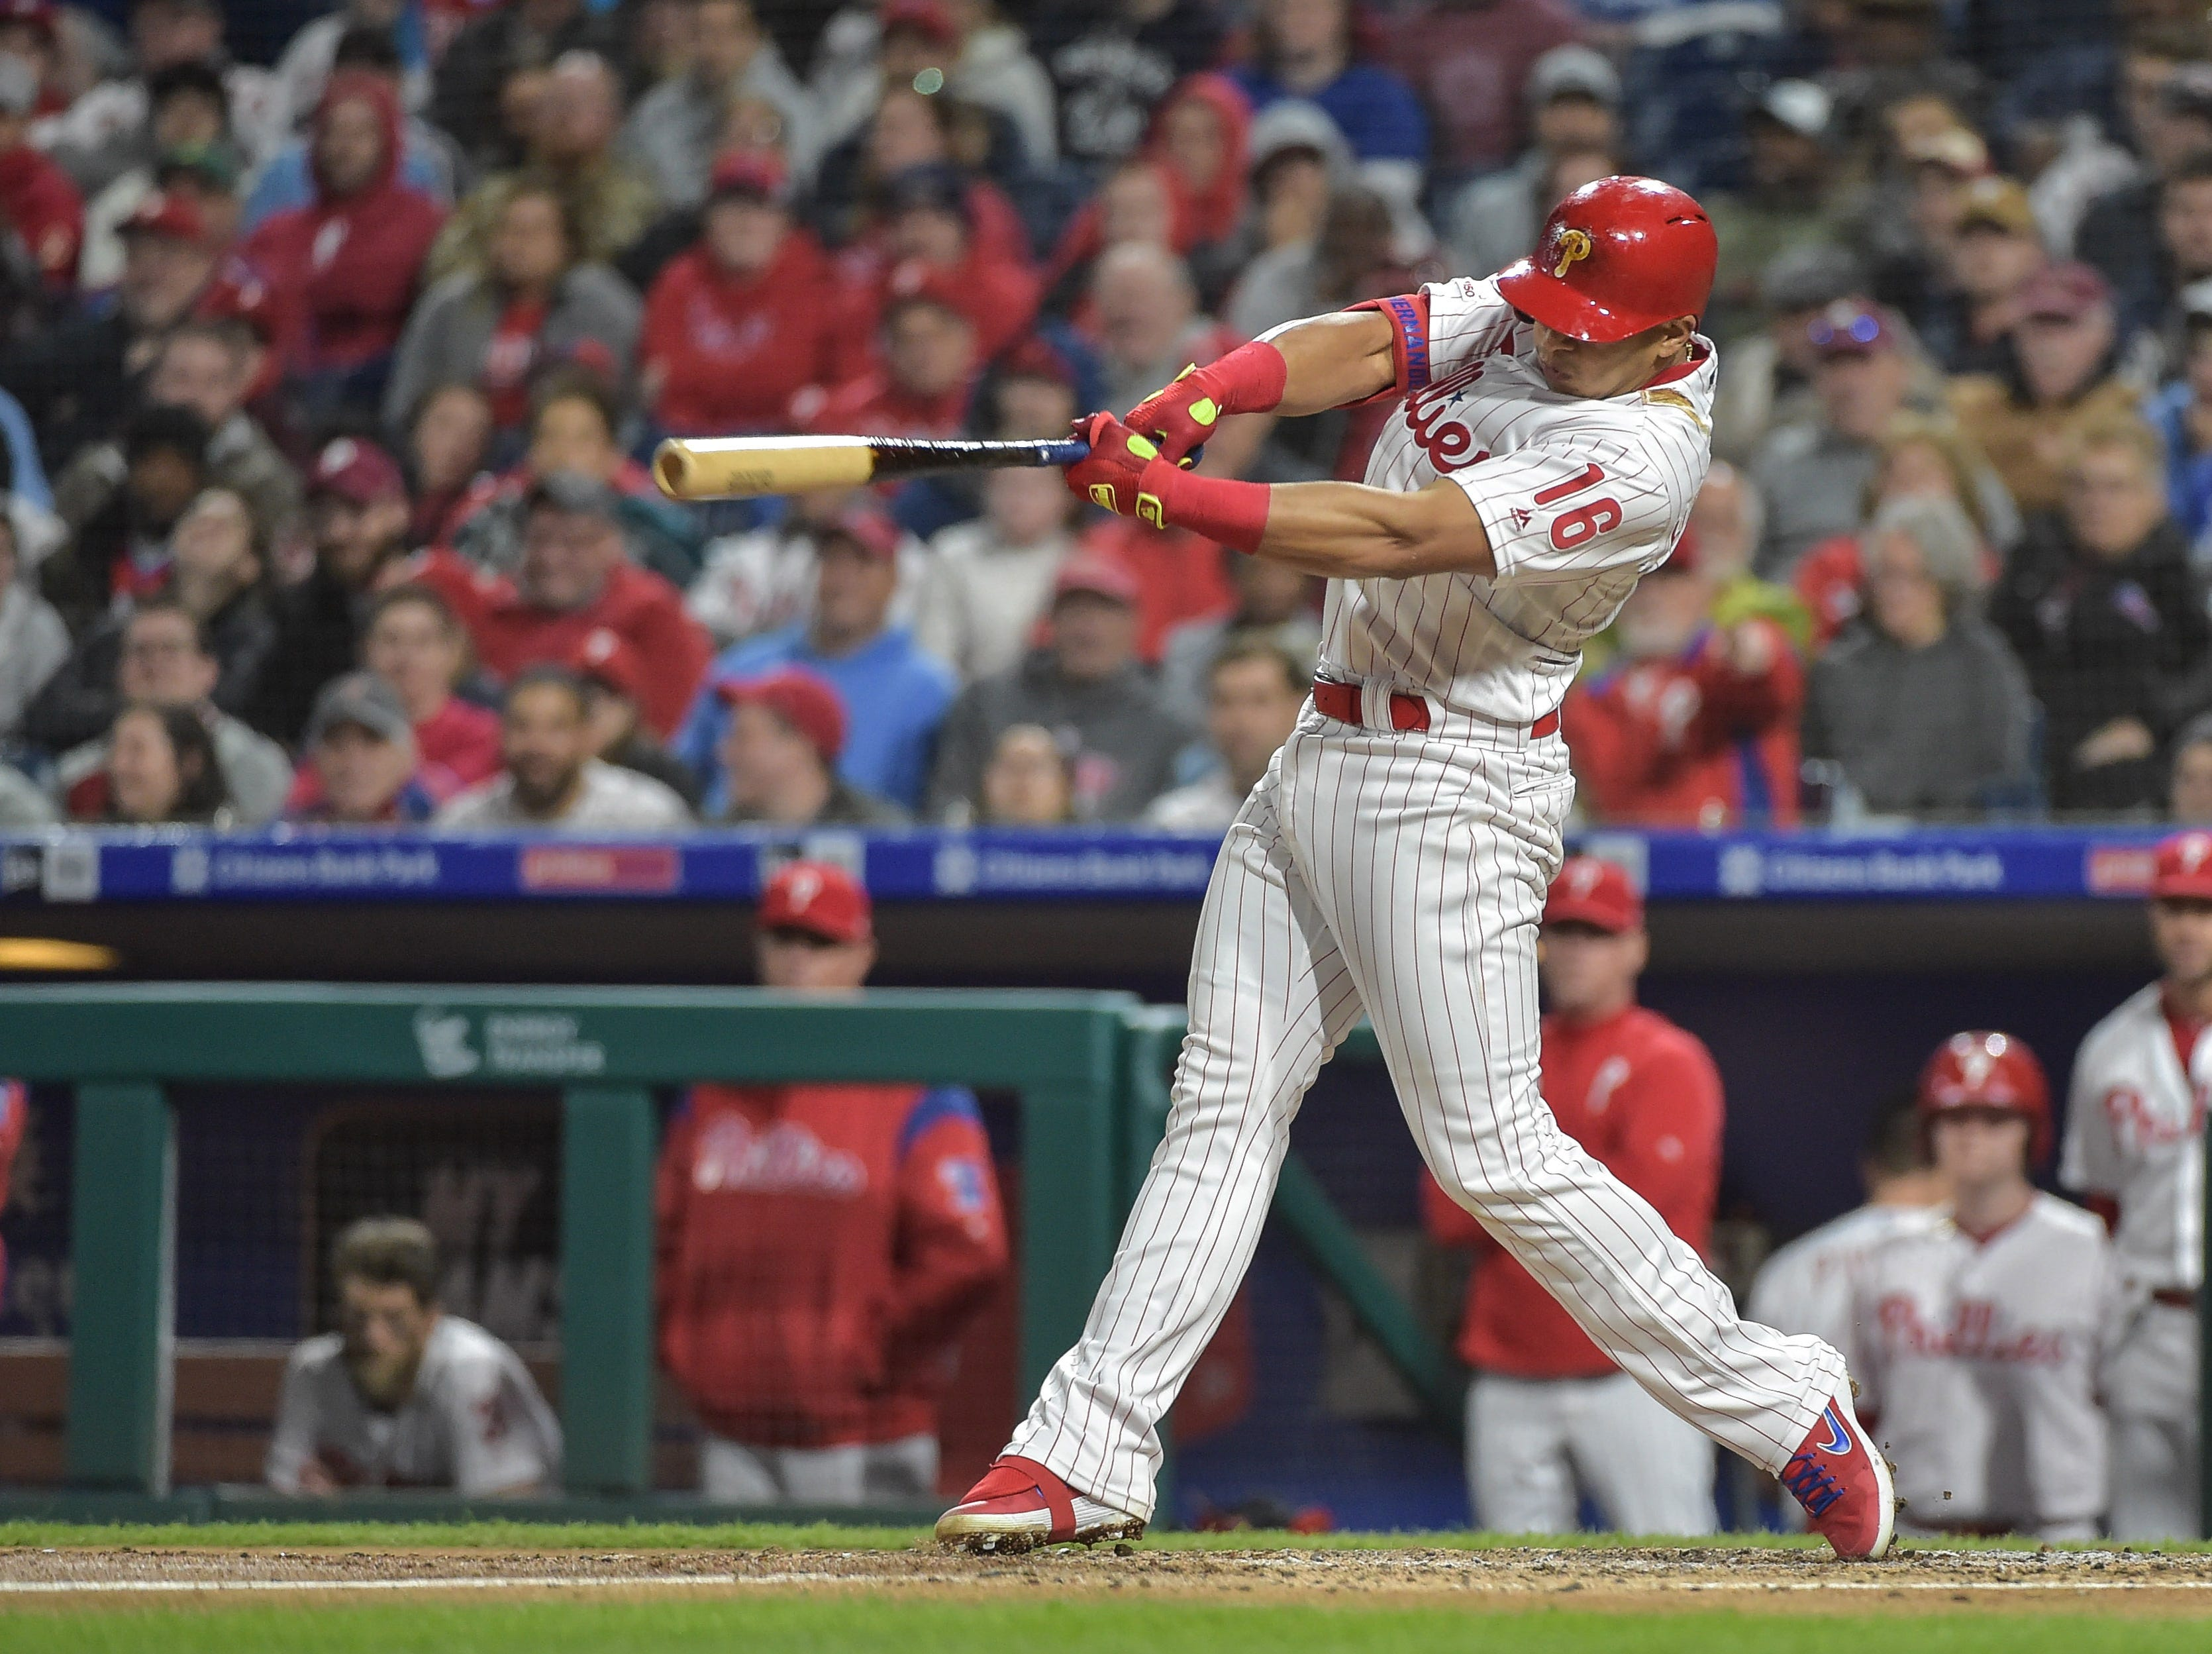 Phillies-Mets lineup announced as Phils go with a new No. 2 hitter